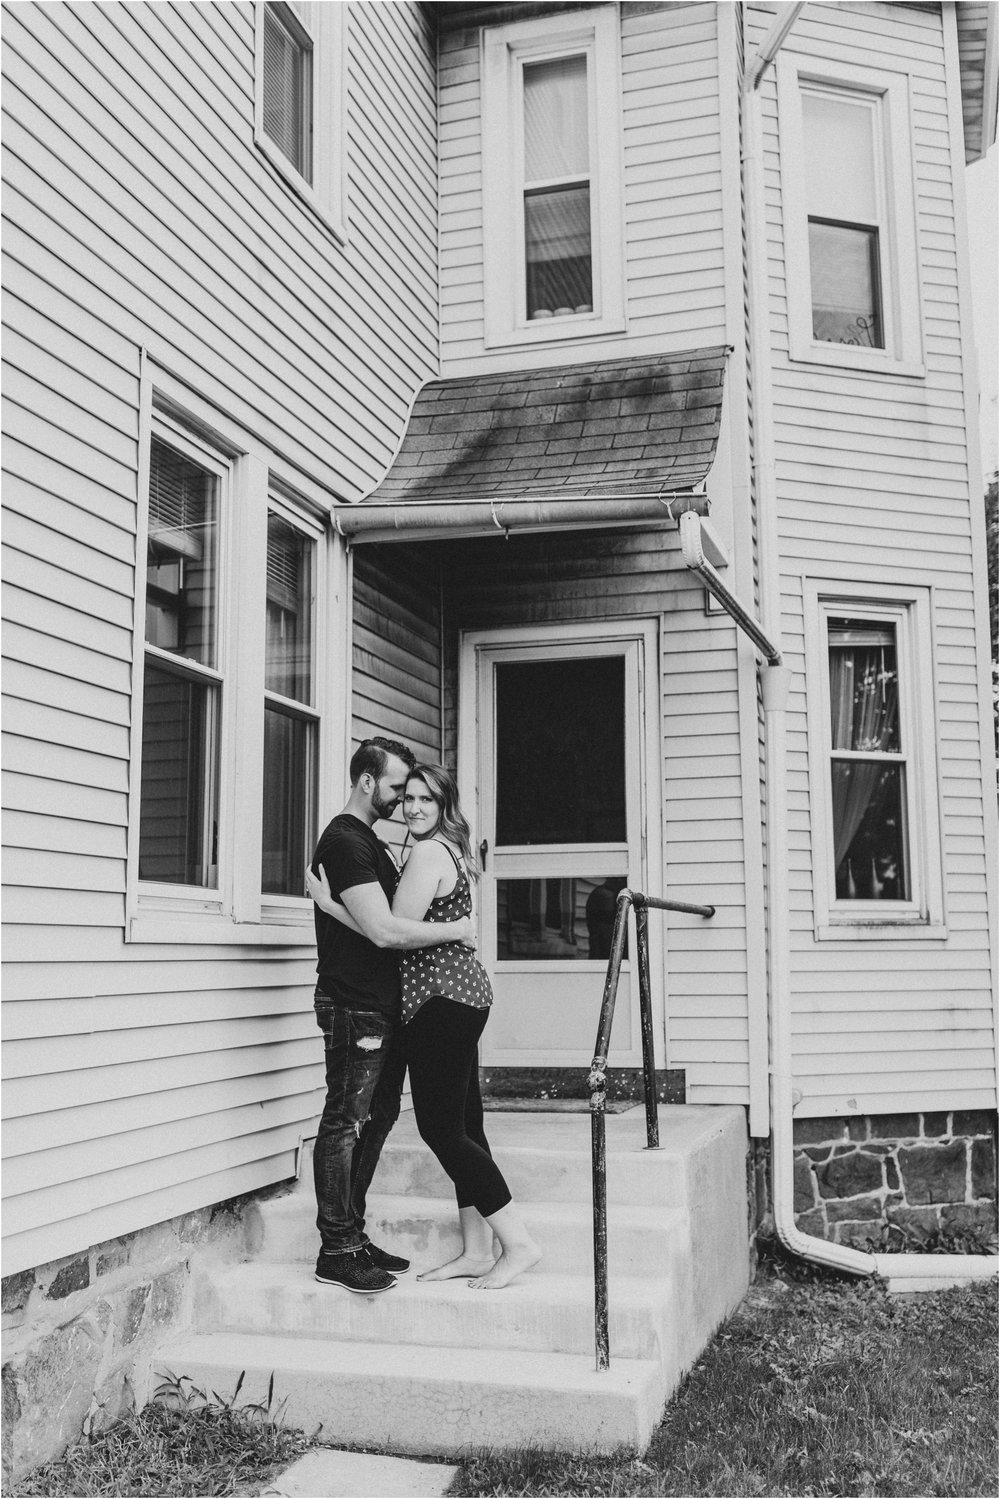 steph-reif-jordan-cox-in-home-lifestyle-engagement-session-hazel-lining-travel-wedding-elopement-photography_0103.jpg